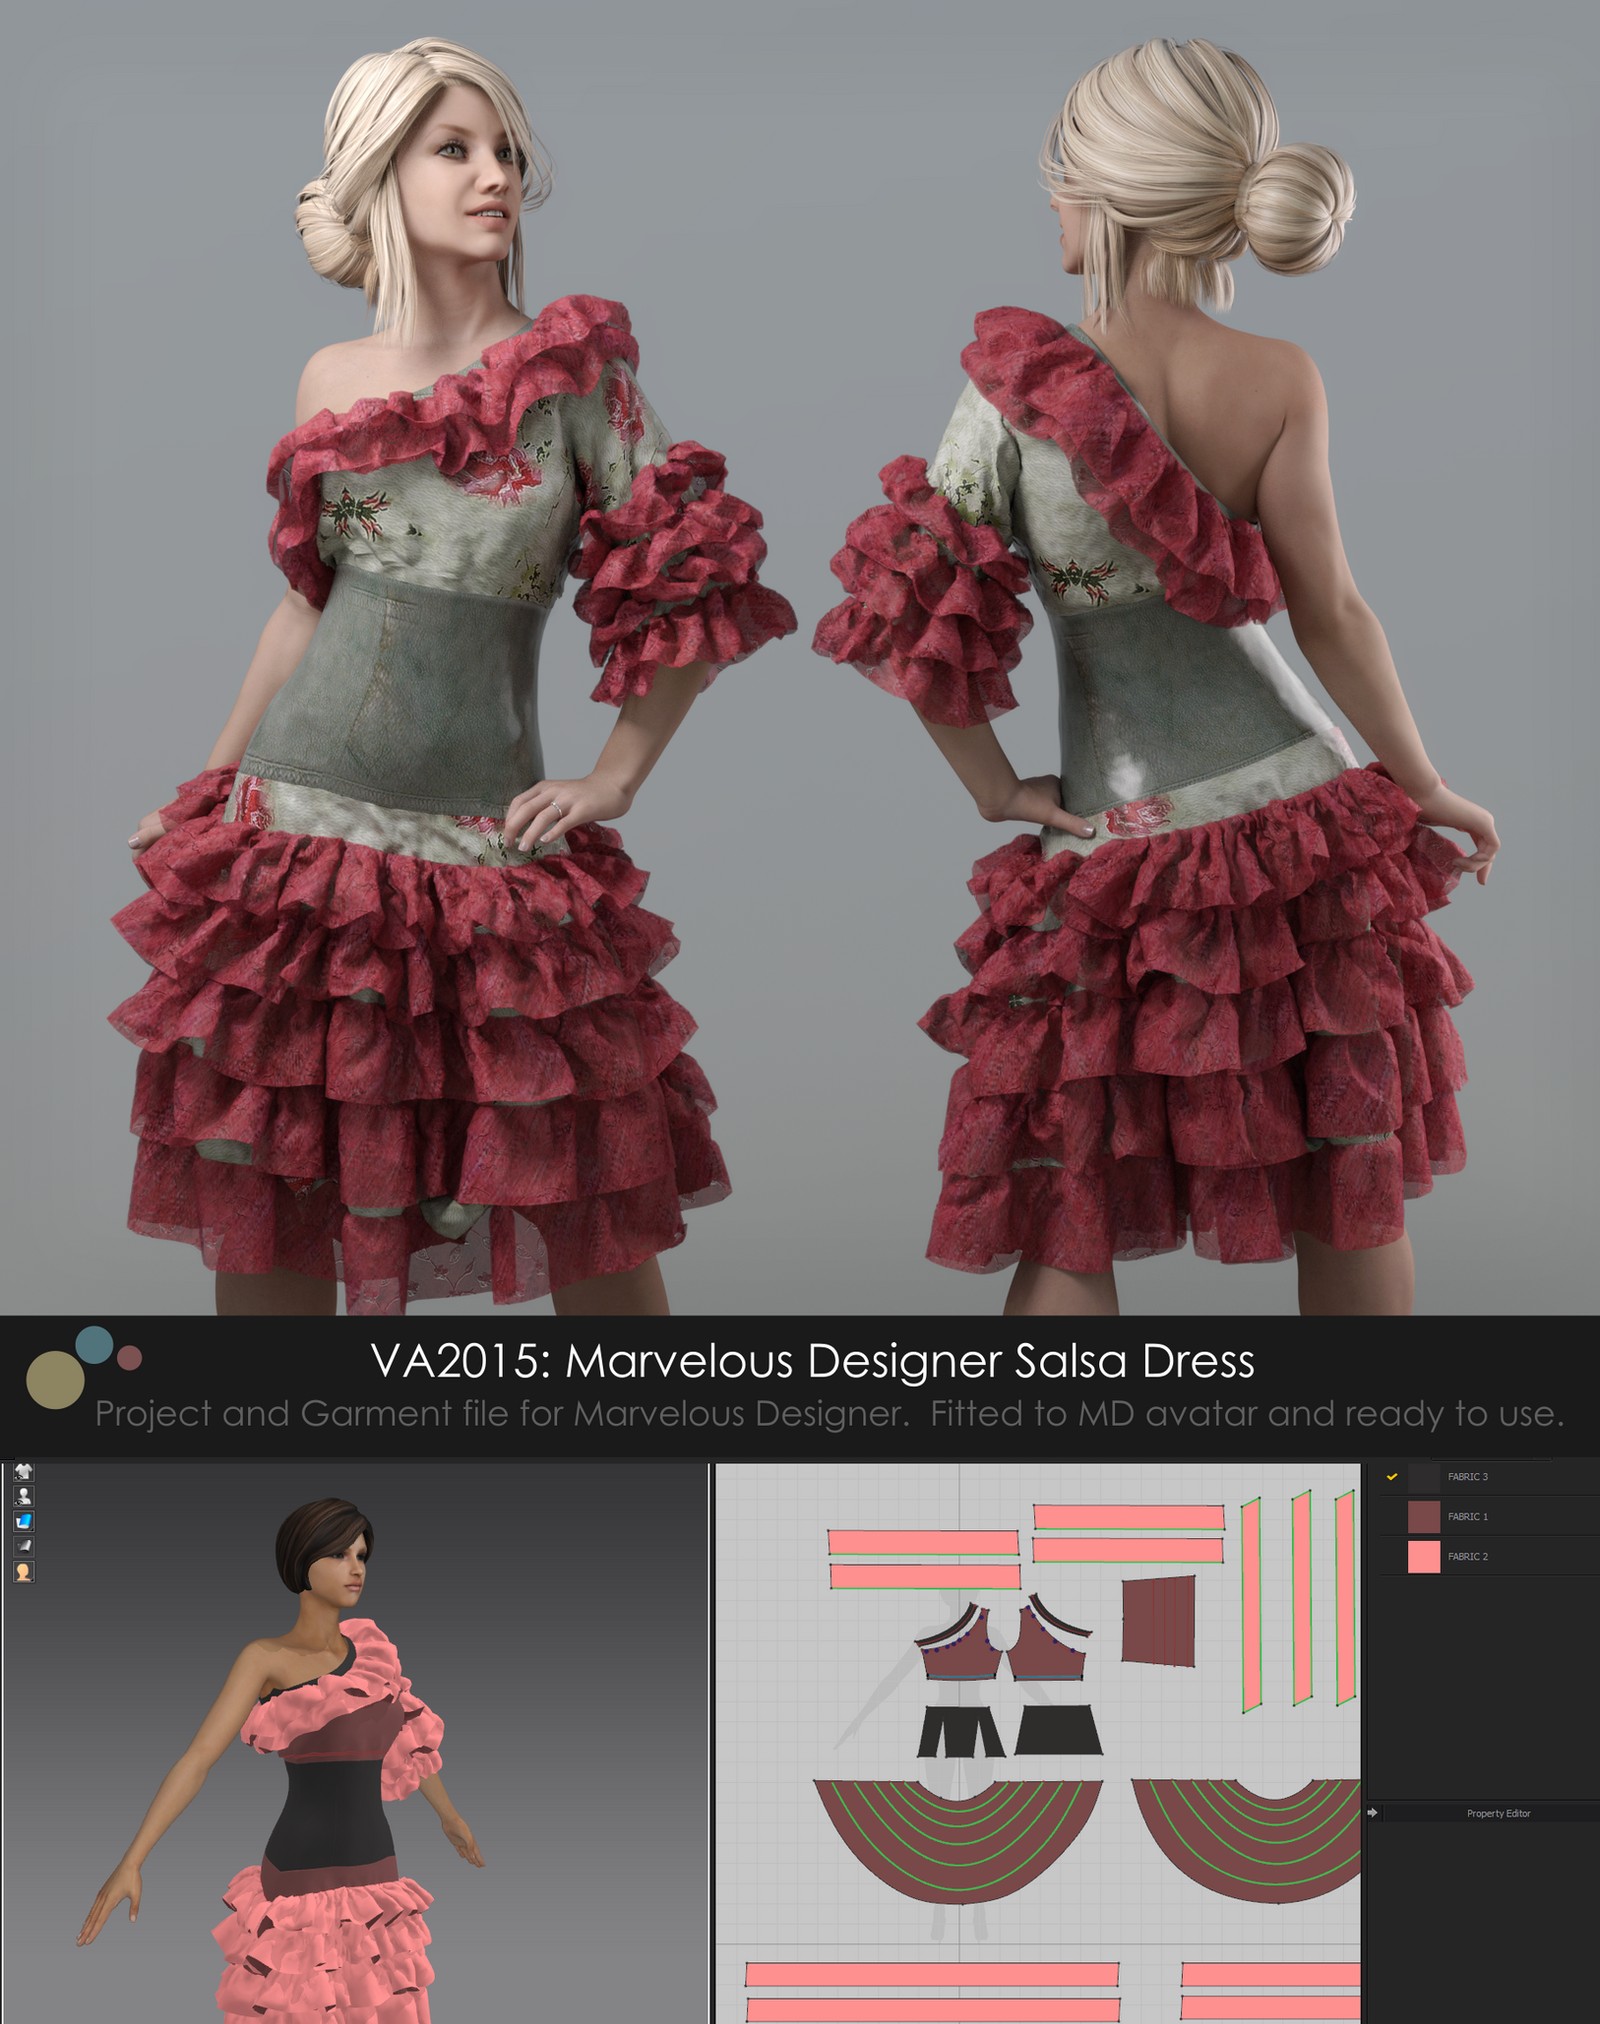 VA2015: Marvelous Designer Salsa Dress [Gumroad] by VAlzheimer